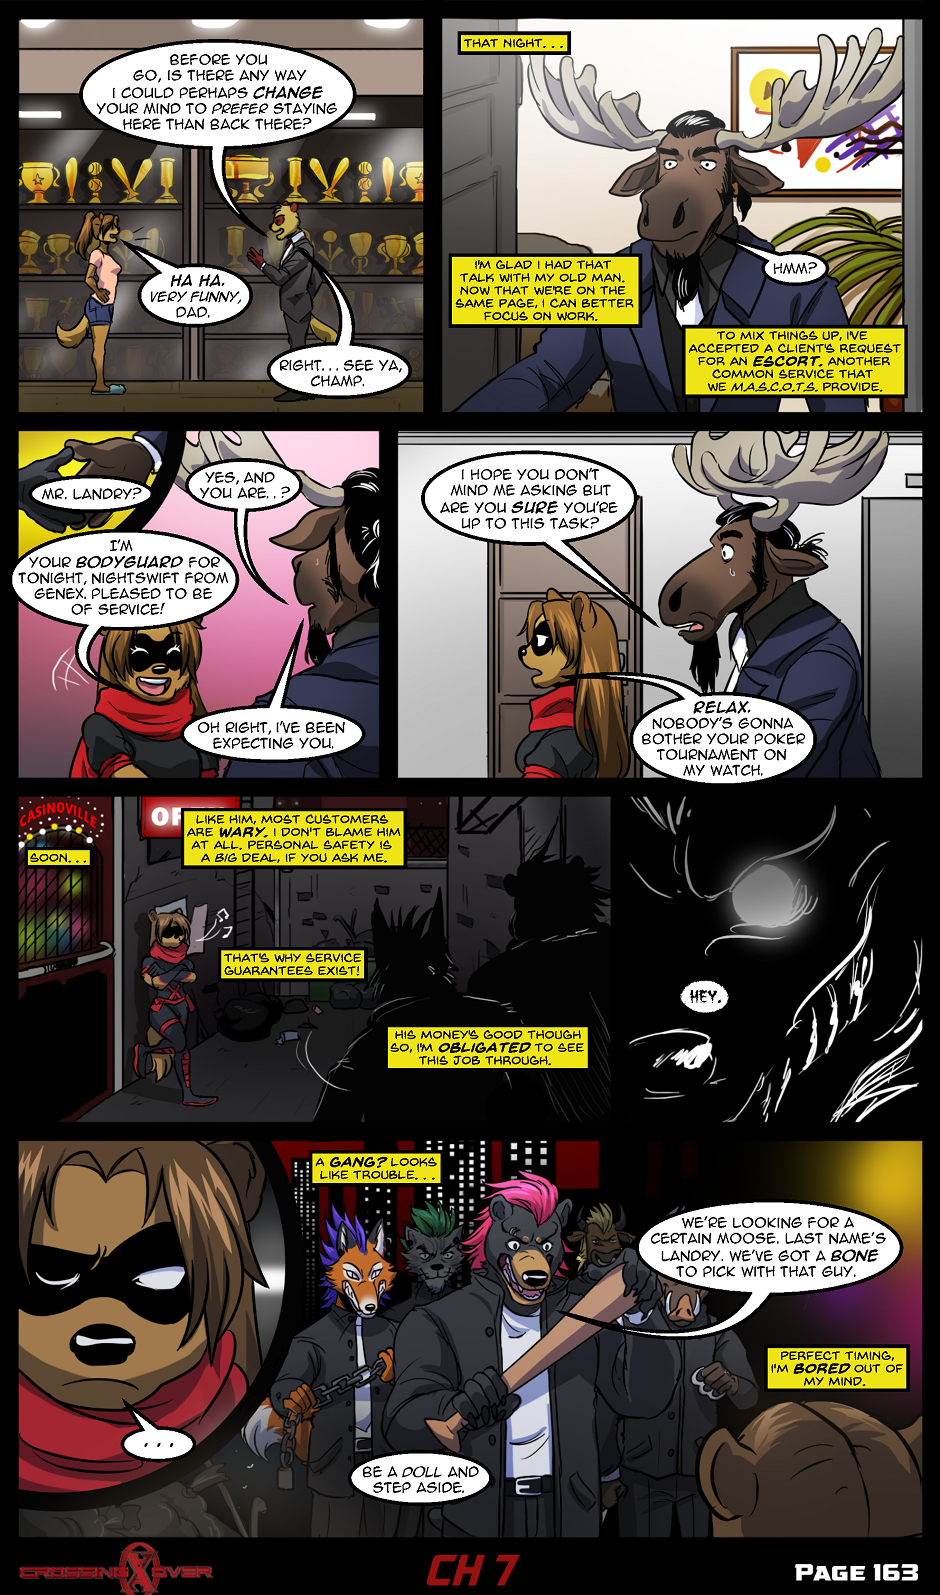 Page 163 (Ch 7)